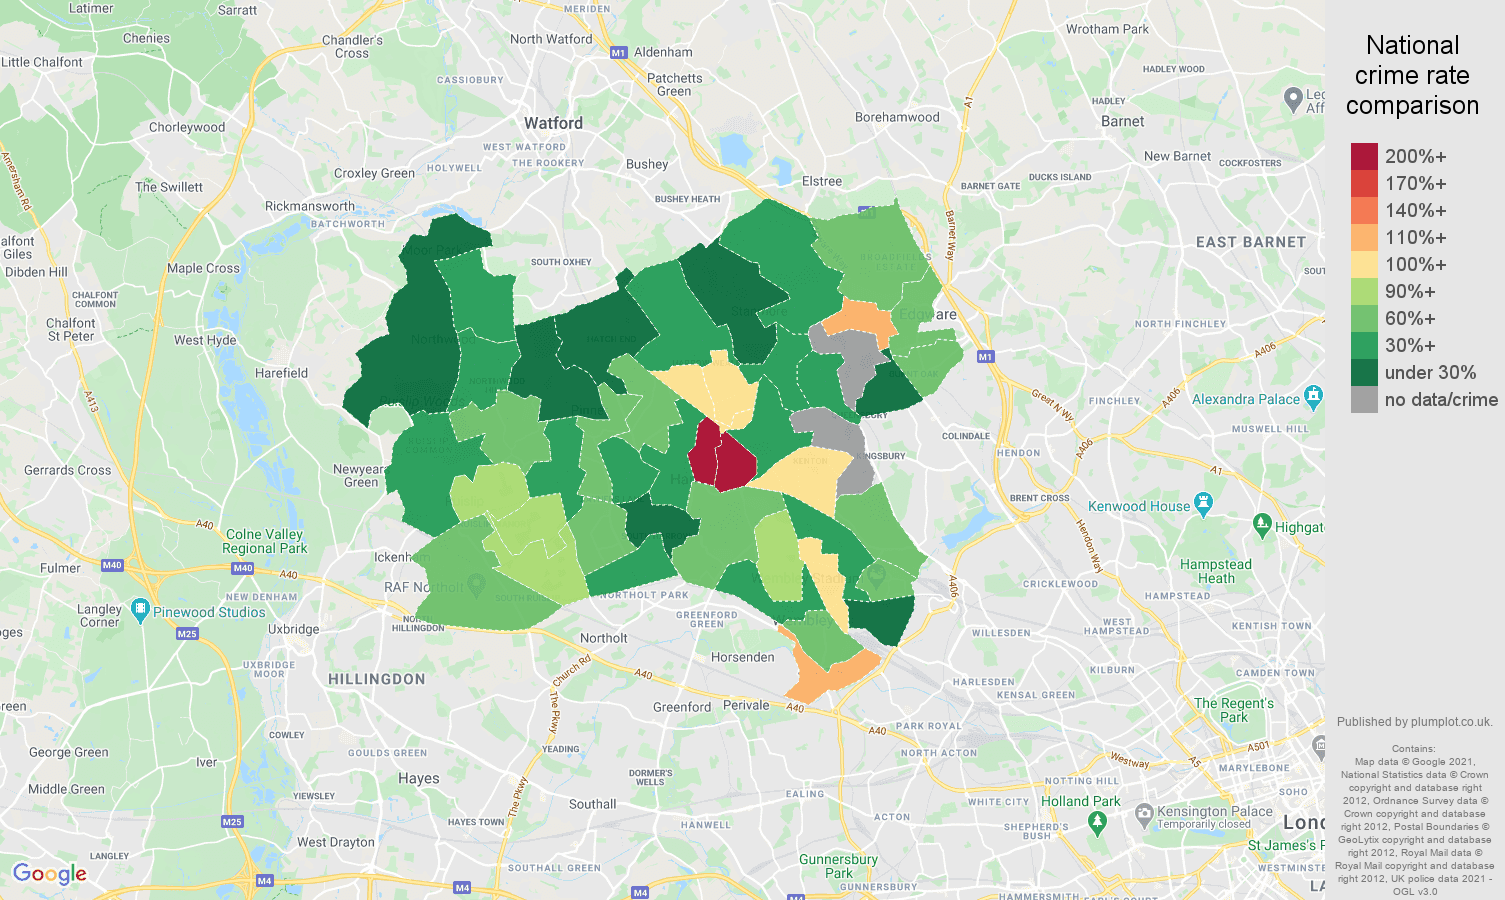 Harrow bicycle theft crime rate comparison map